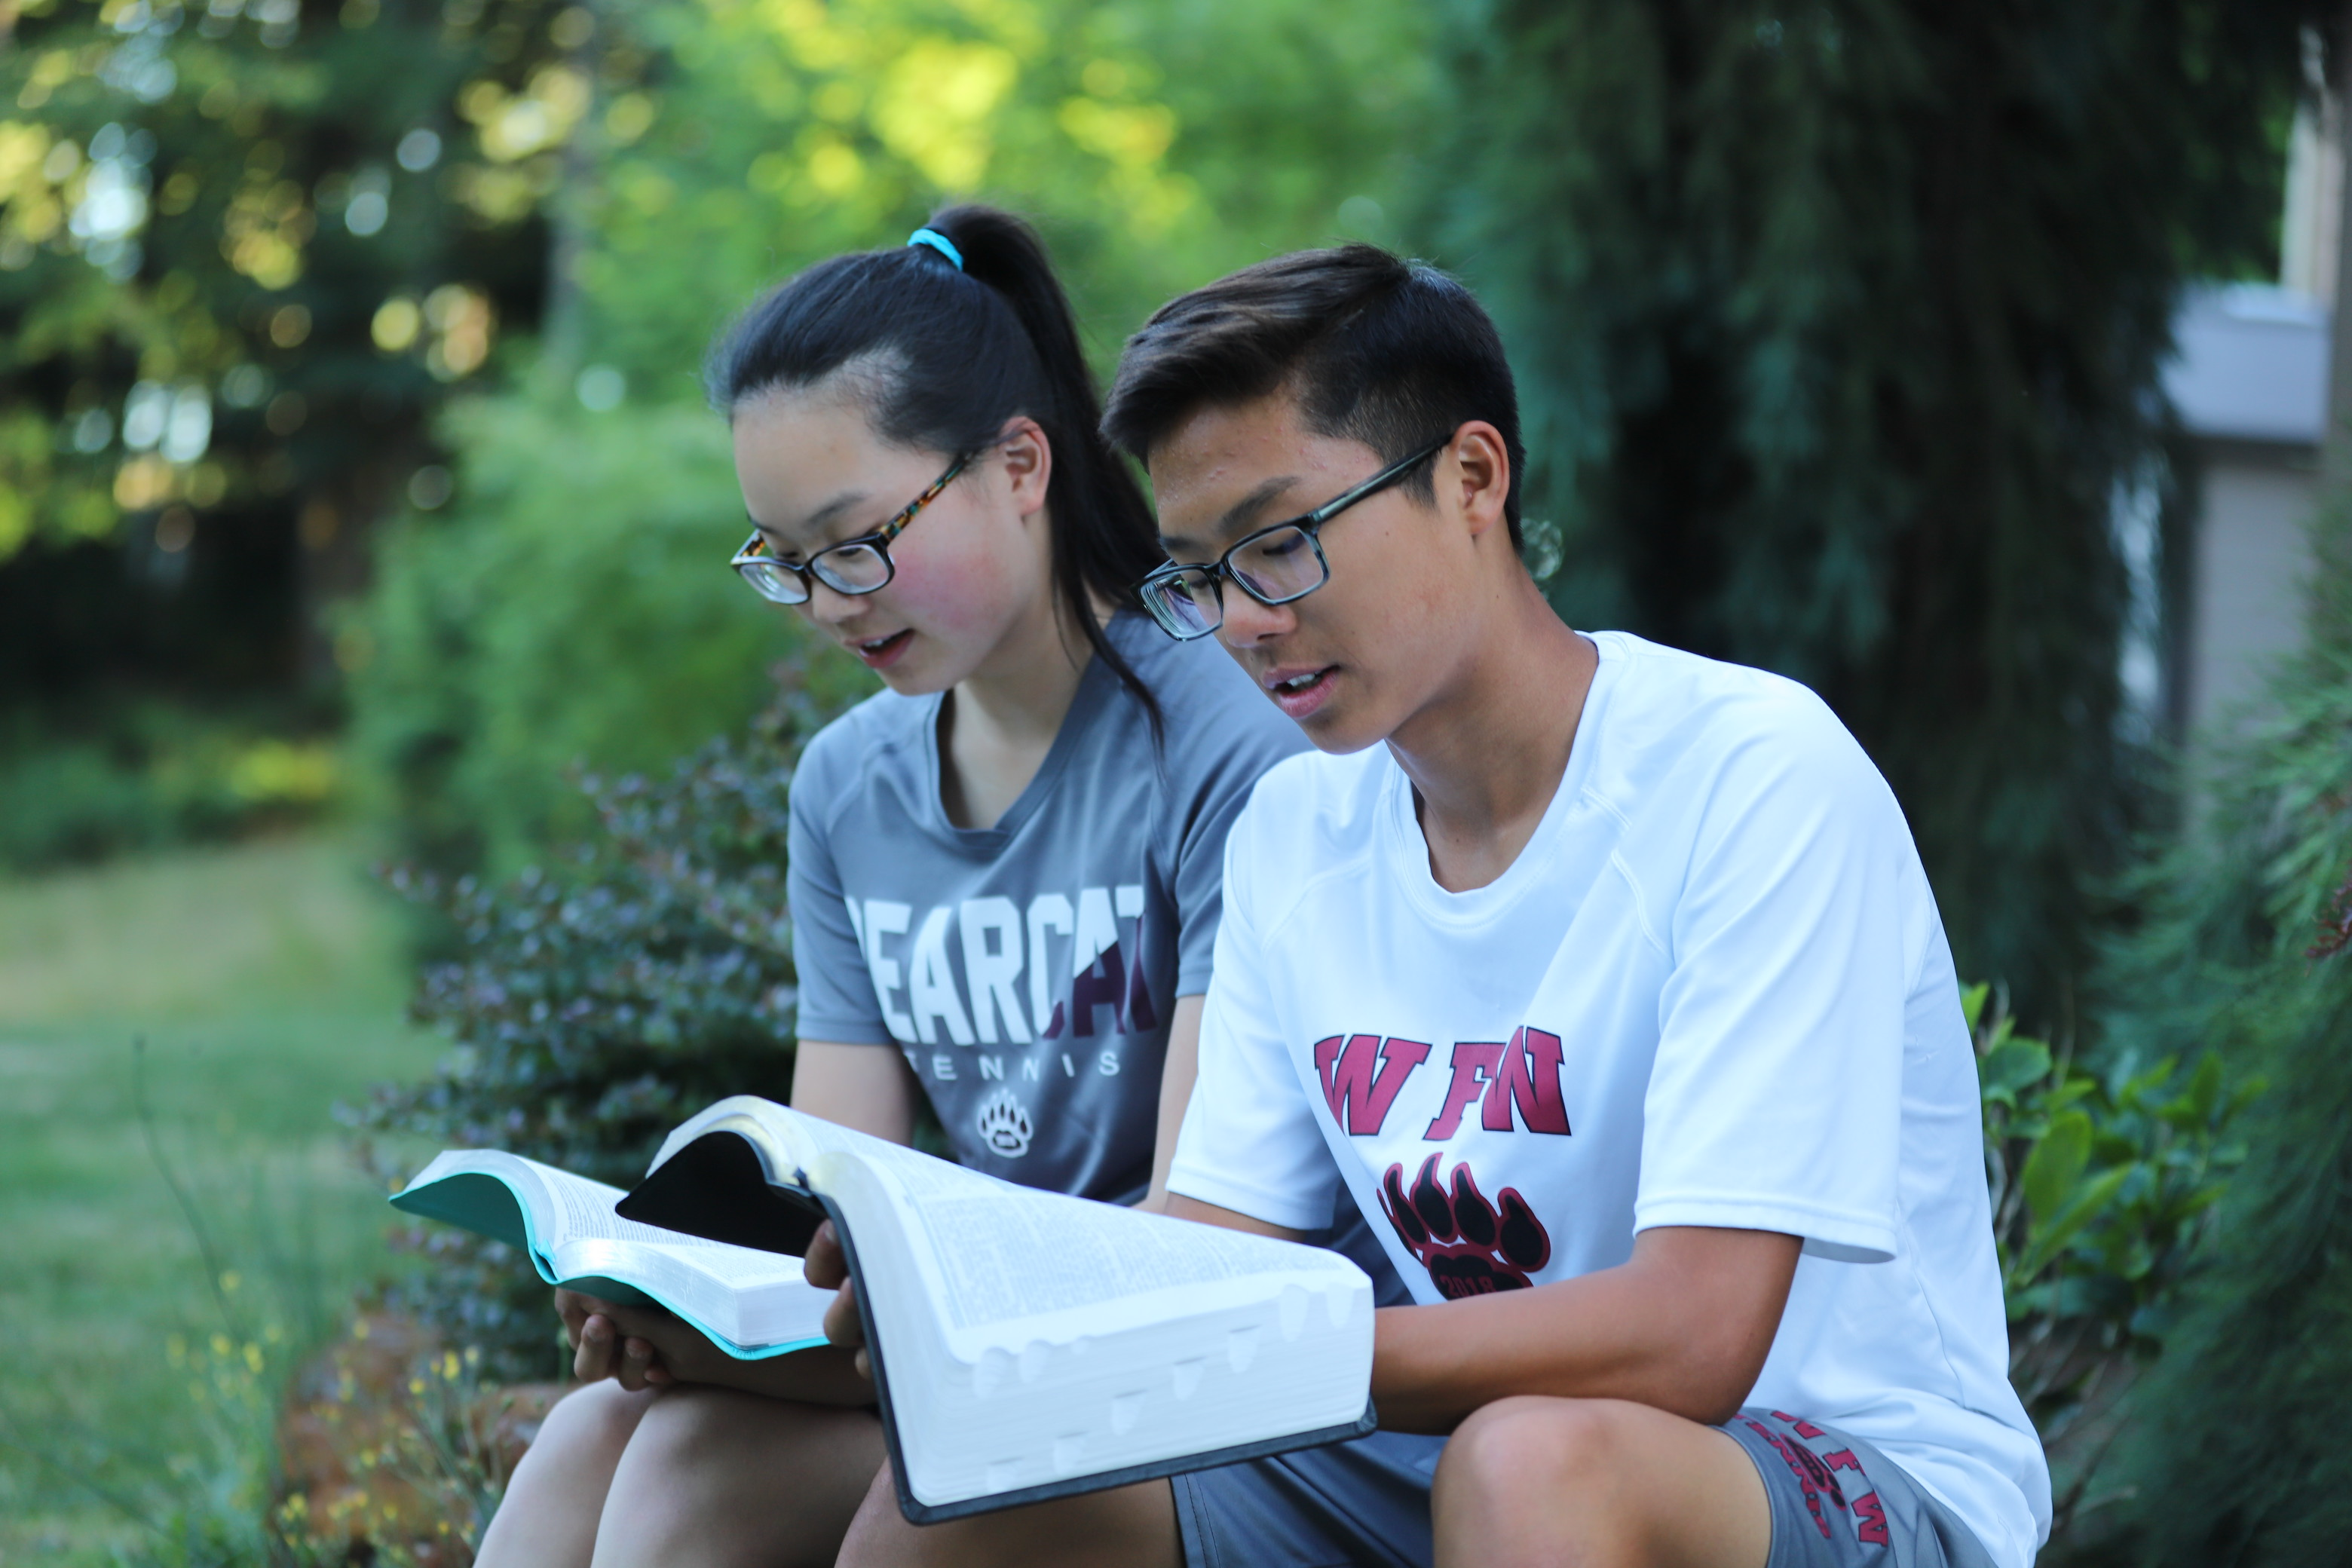 Joseph and Joelle Chung study the Bible